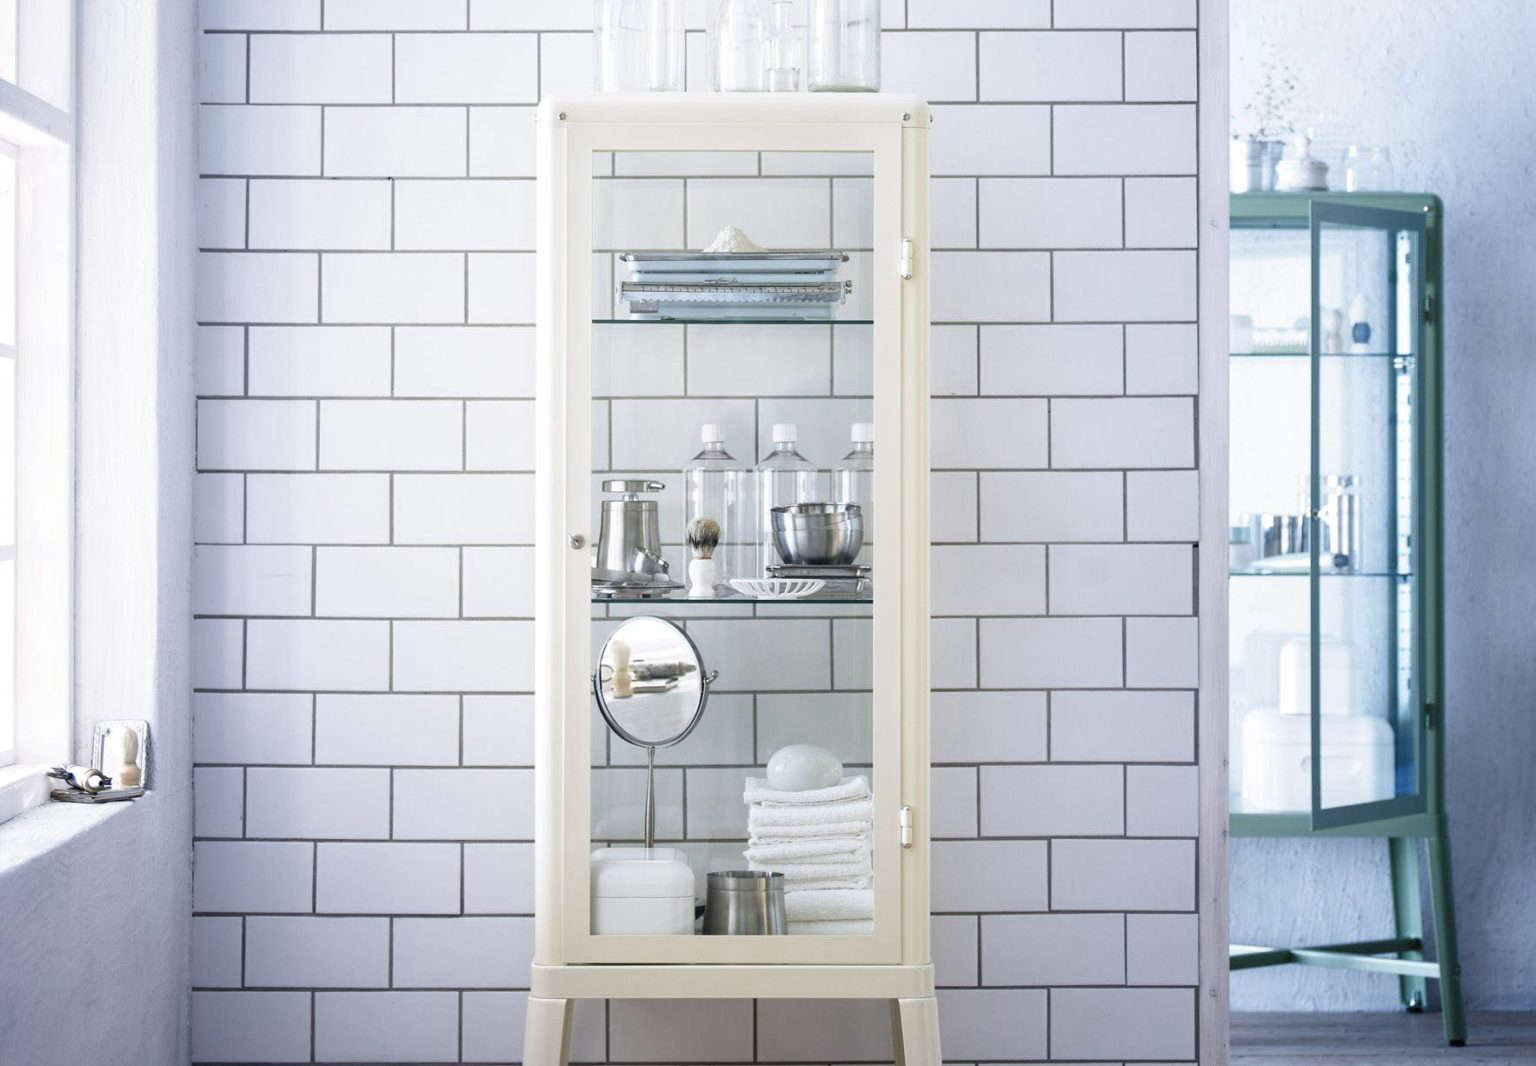 On A Recent Ikea Expedition, I Admired The Many Powder Coated Steel Storage  Options, And In Particular, The Doctoru0027s Office Style Fabrikör Cabinet, ...